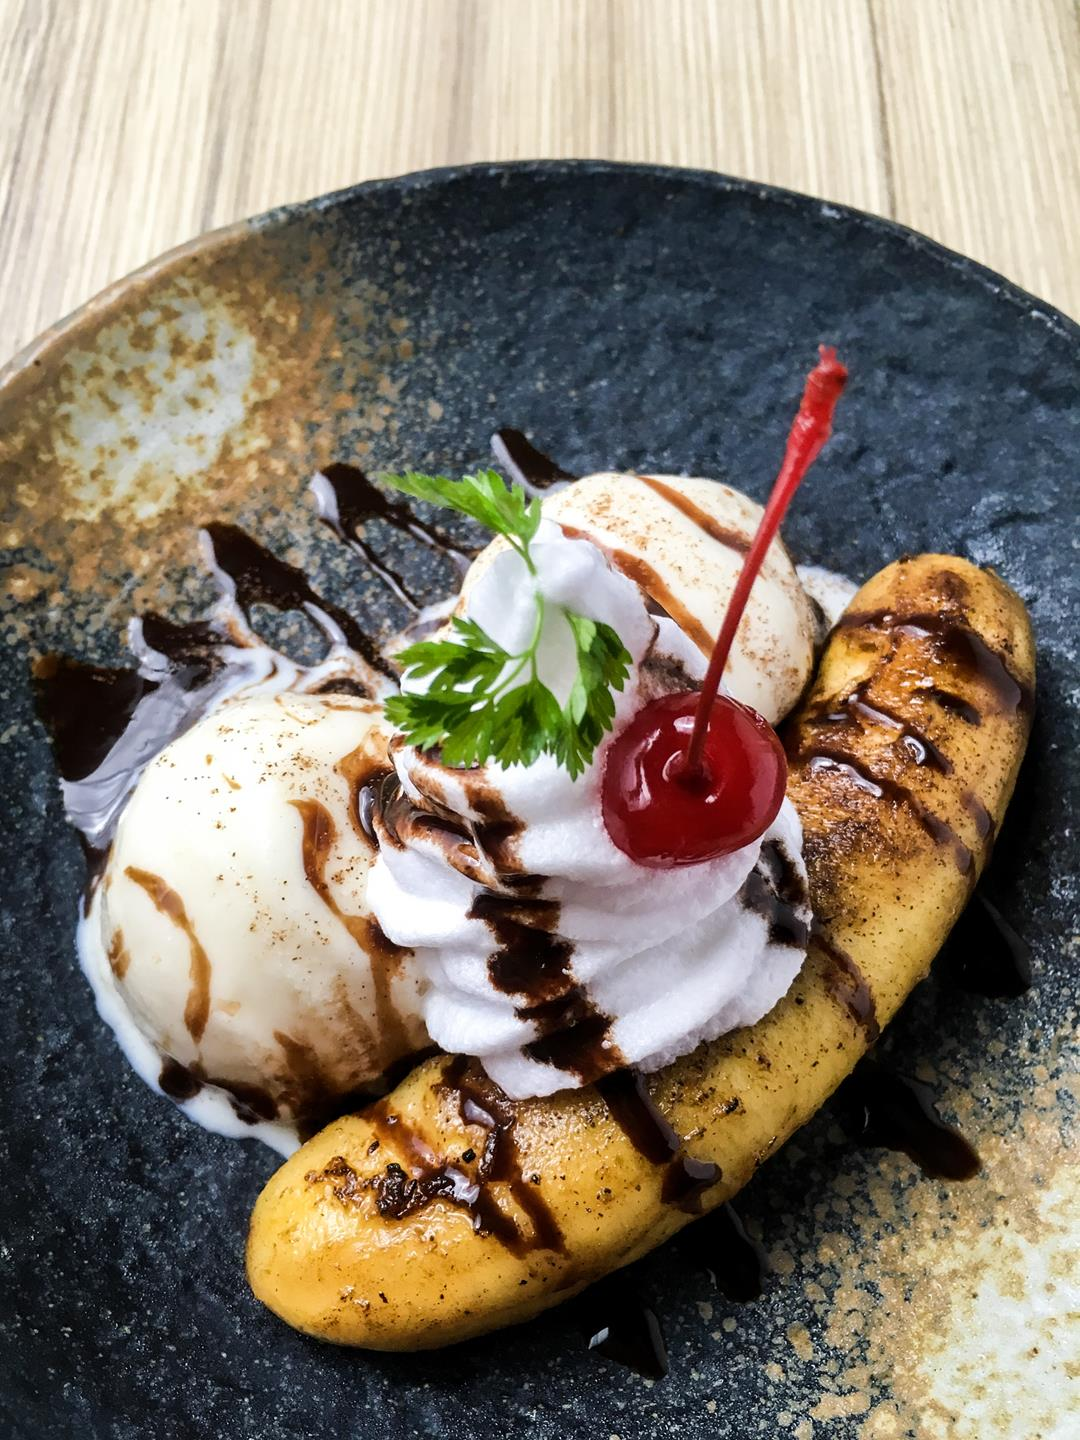 Grilled Banana - Your favorite split is given a new twist with grilled banana instead.